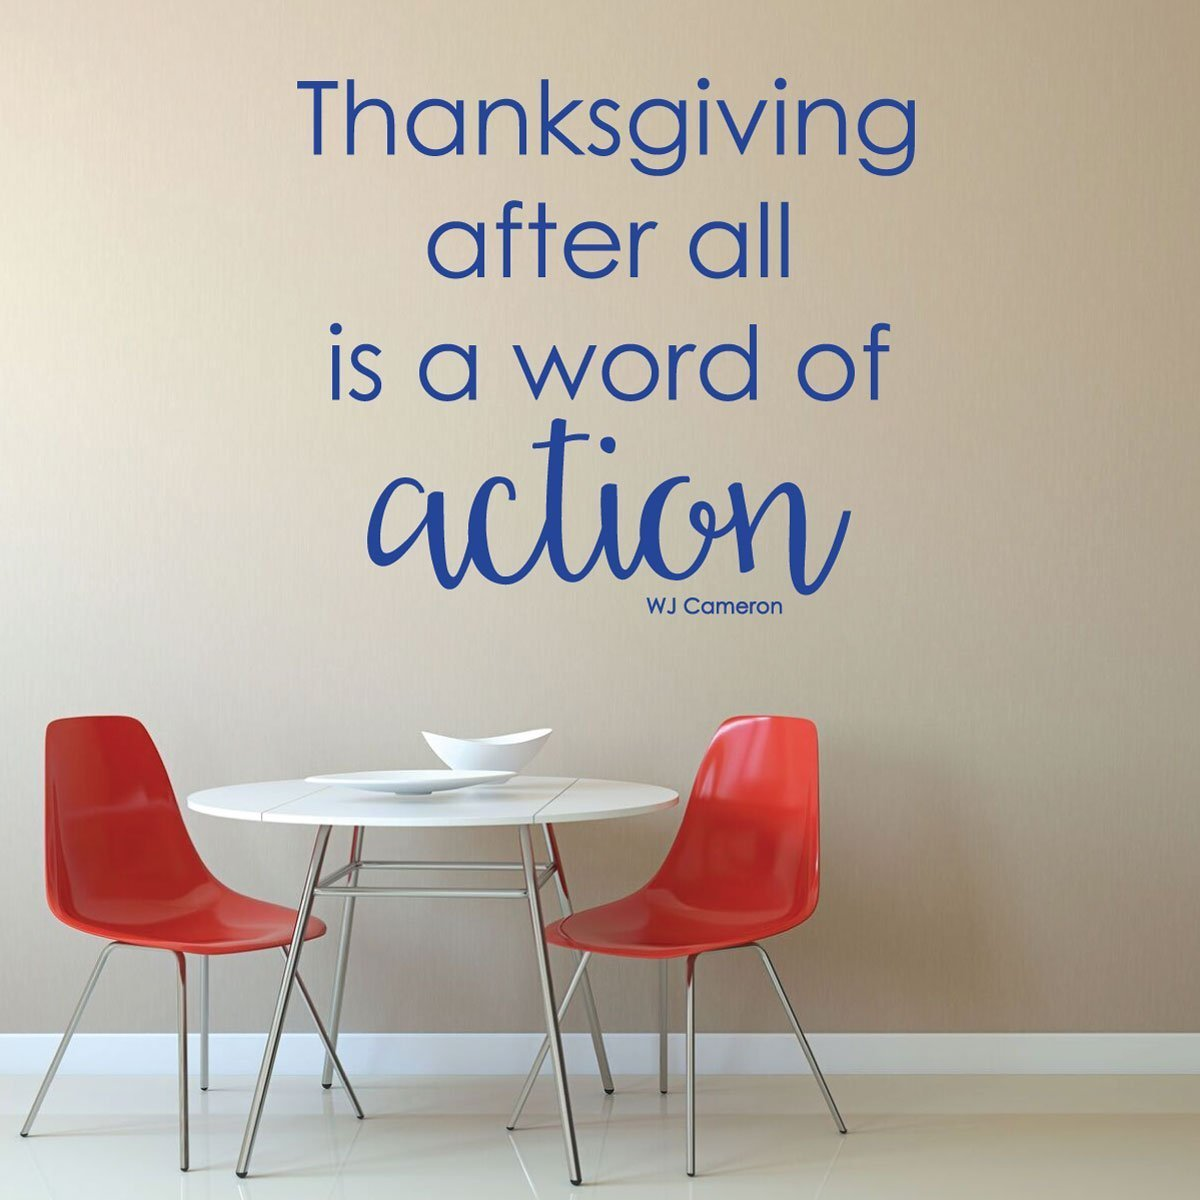 Thanksgiving Decor - Thanksgiving After All is a Word of Action